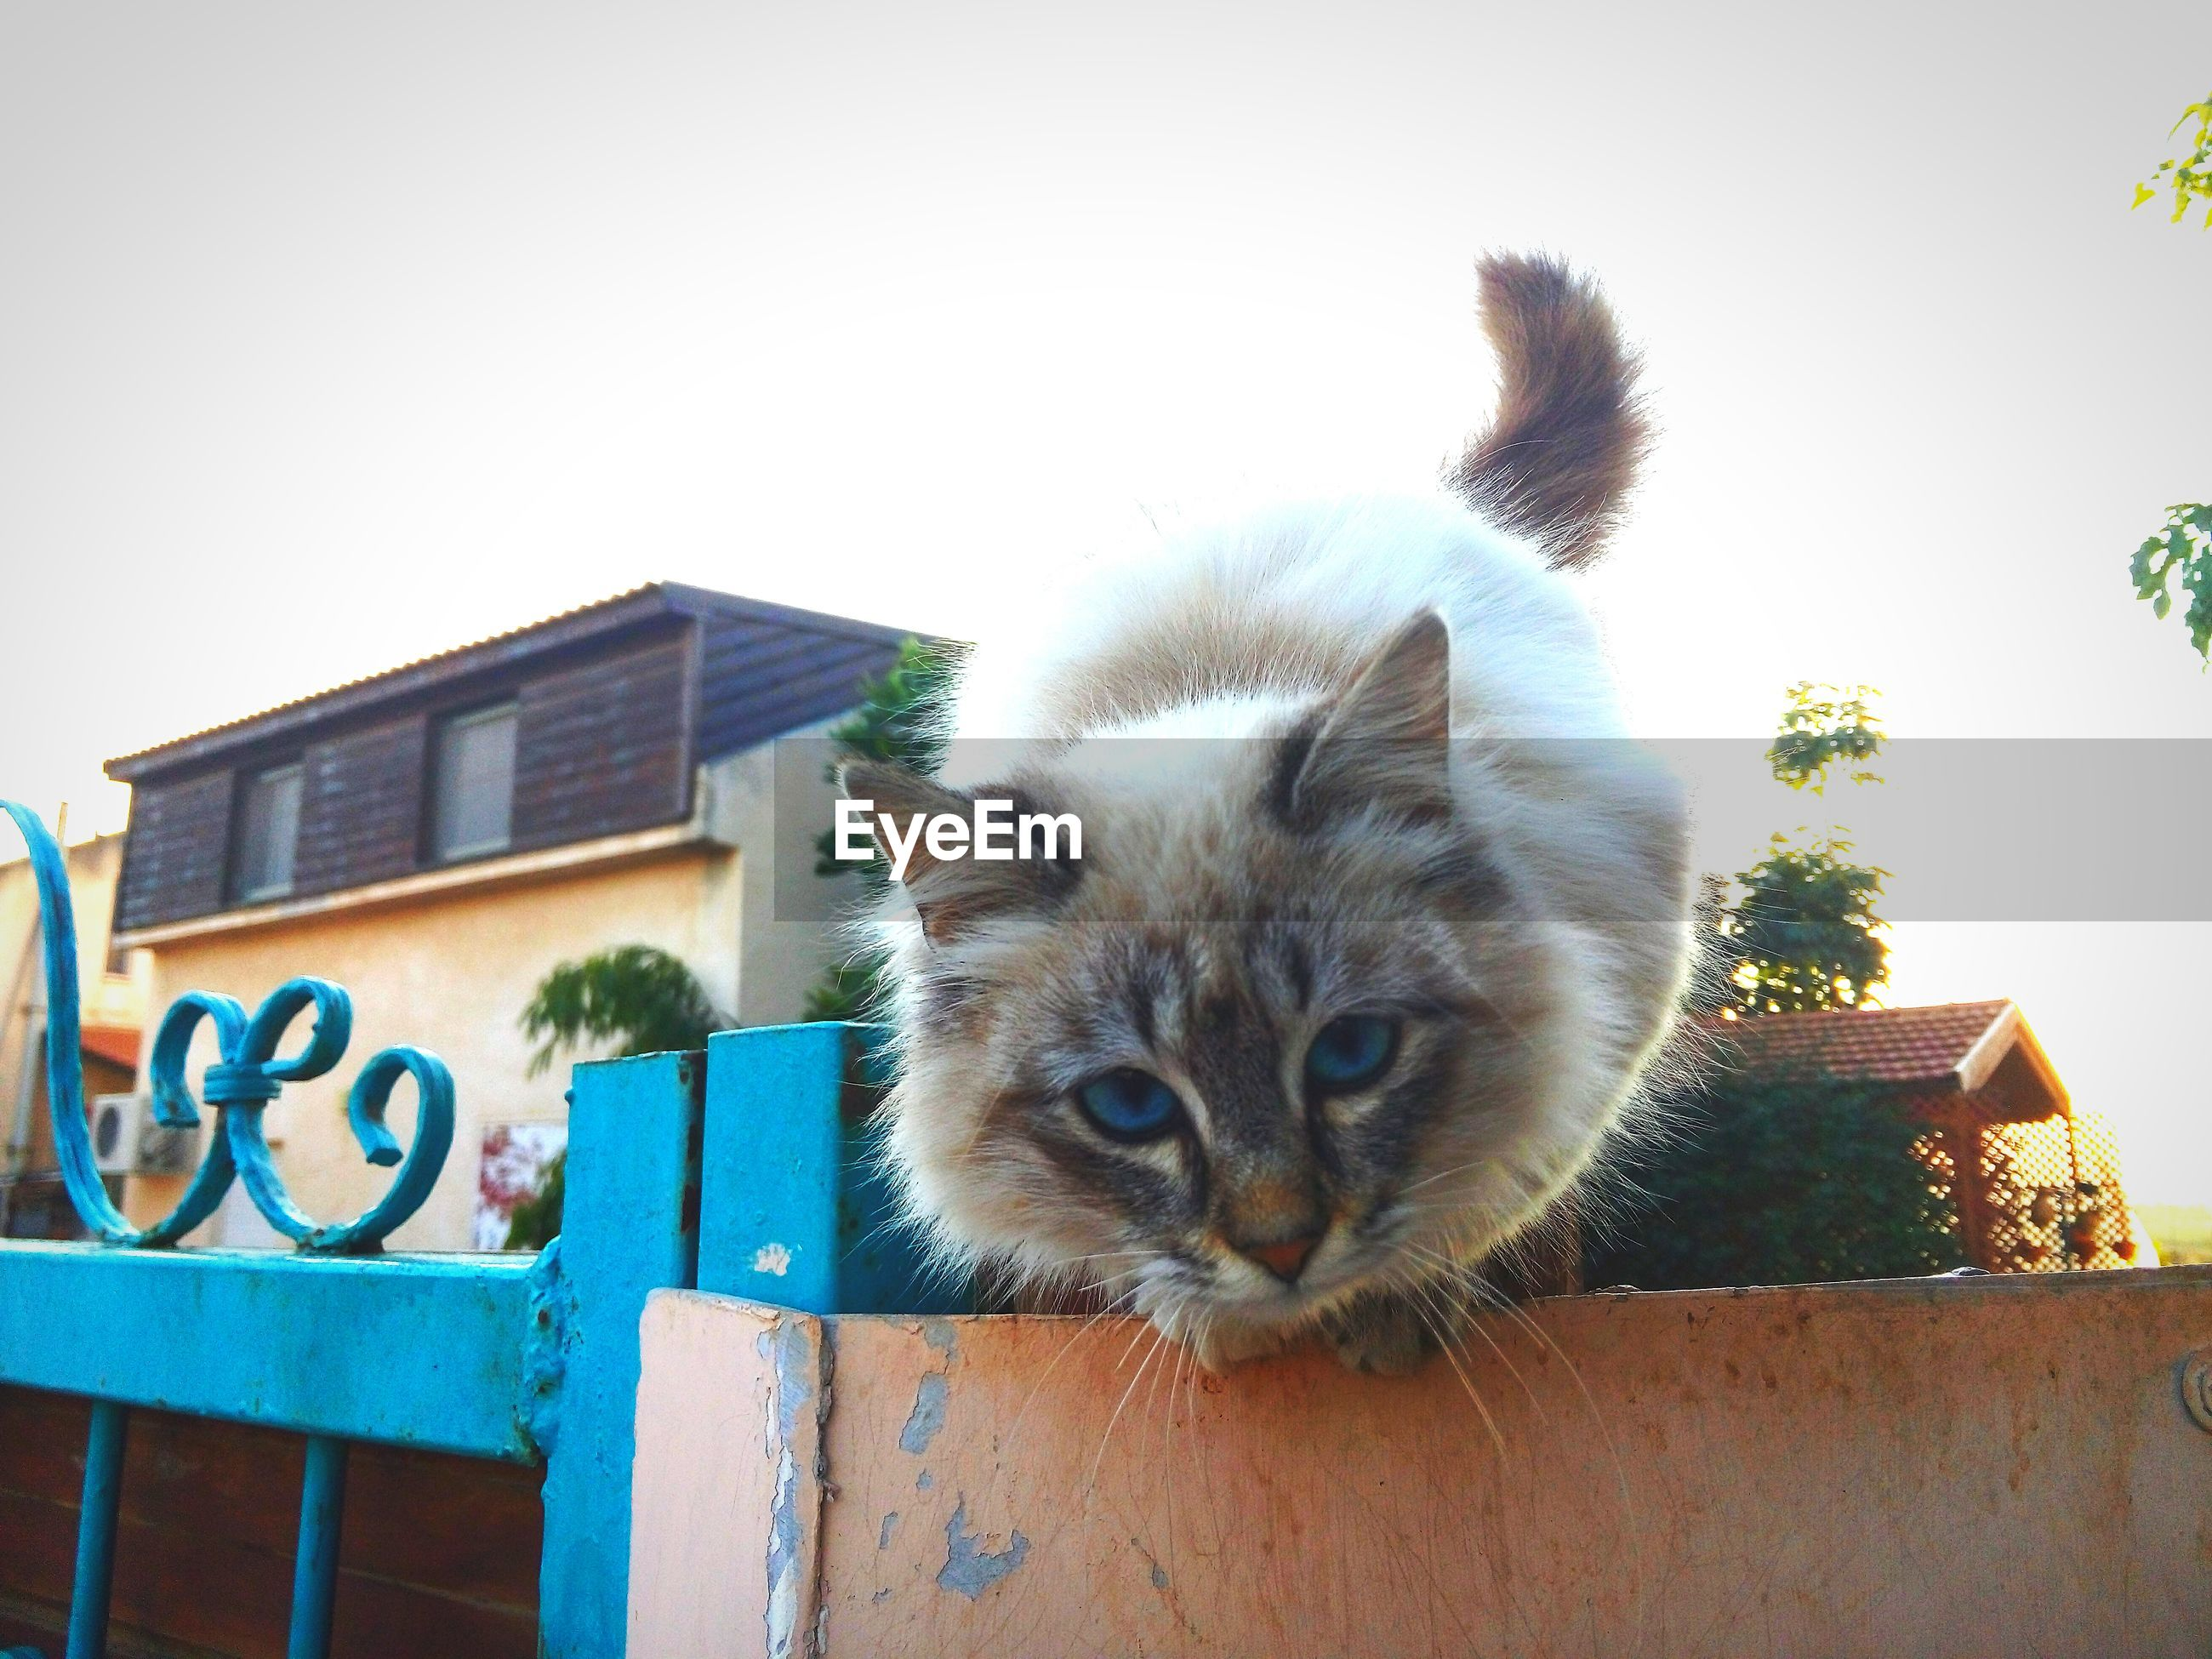 domestic cat, one animal, animal themes, cat, domestic animals, mammal, pets, feline, whisker, portrait, low angle view, looking at camera, building exterior, clear sky, architecture, front view, built structure, blue, alertness, outdoors